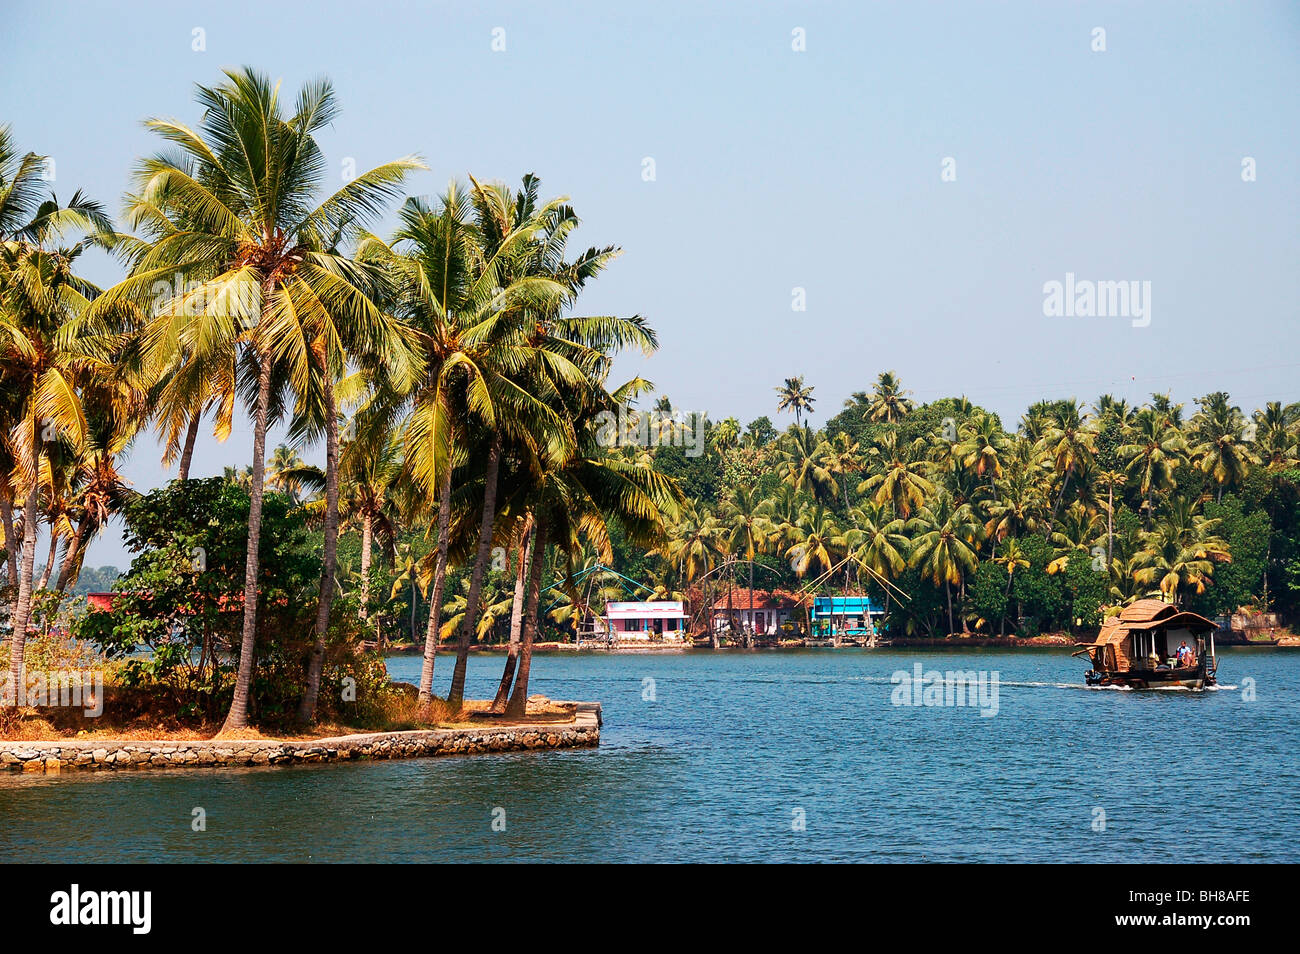 house boat, ashtamudi lake, kollam - Stock Image